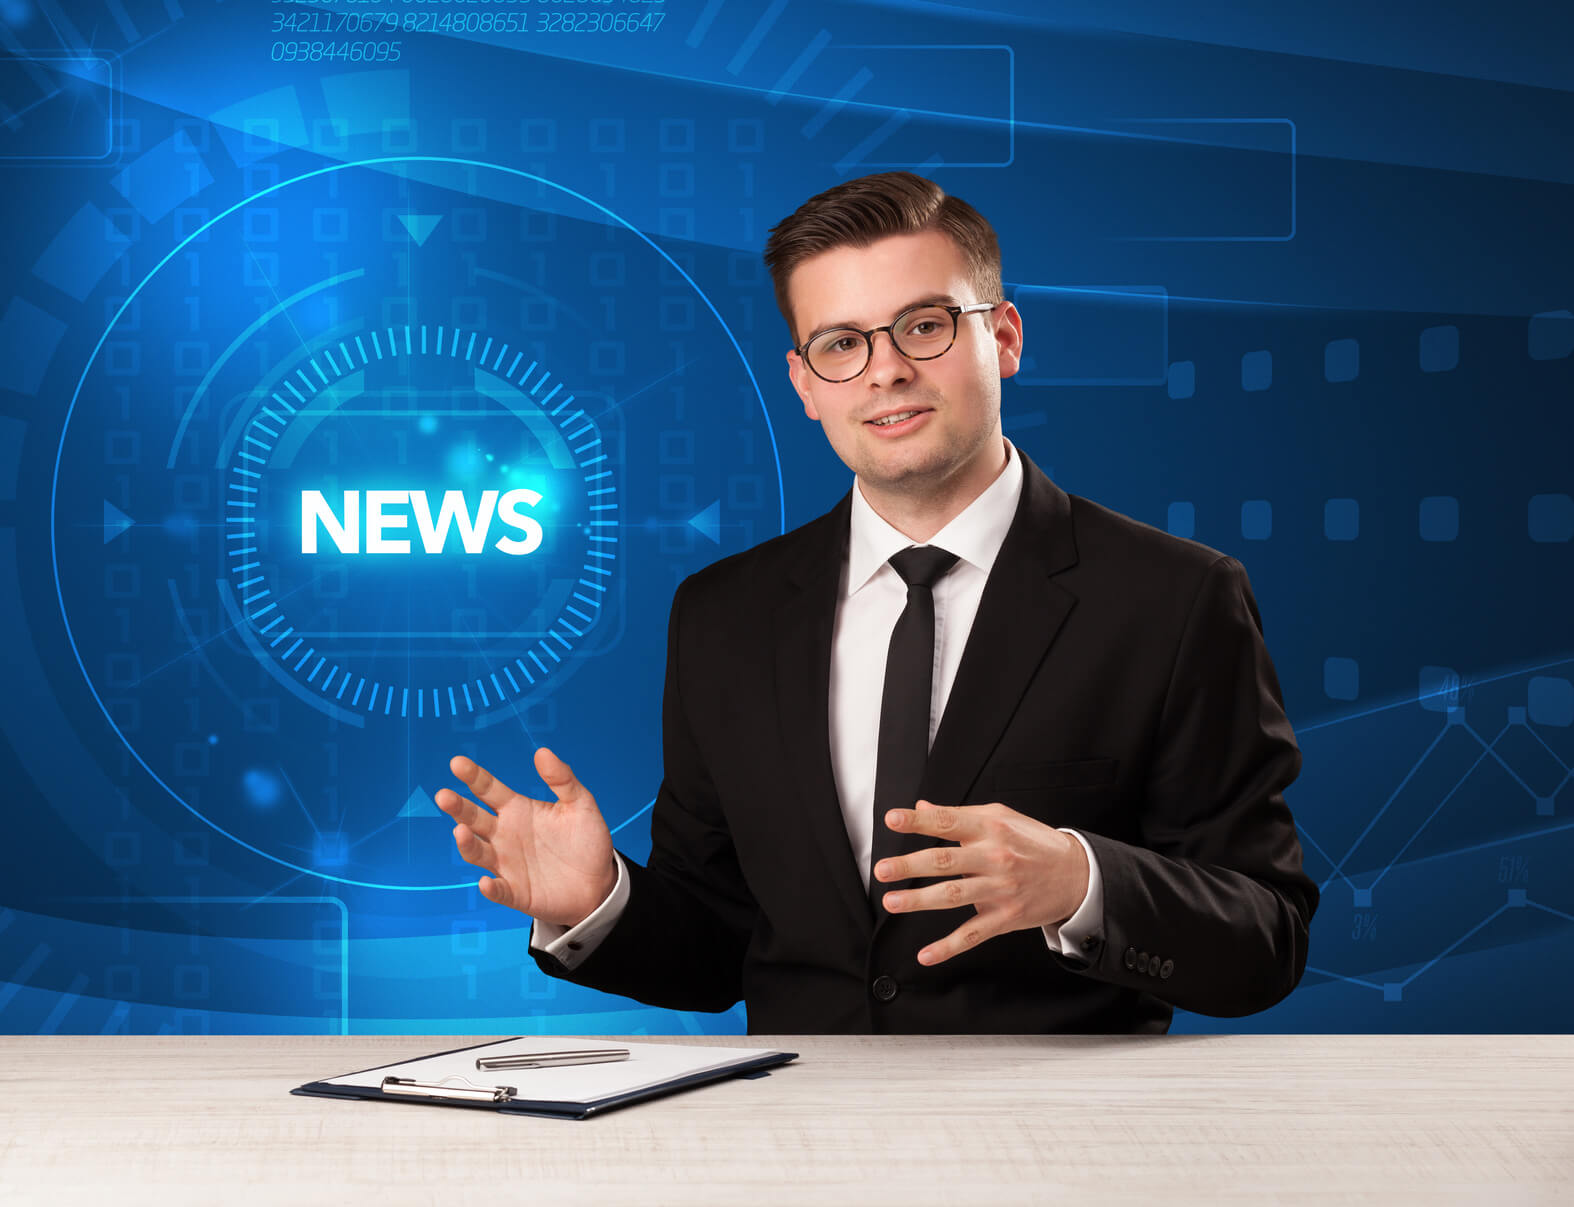 Morning Announcement Nes are different from traditional news. © Fotolia / ra2 studio